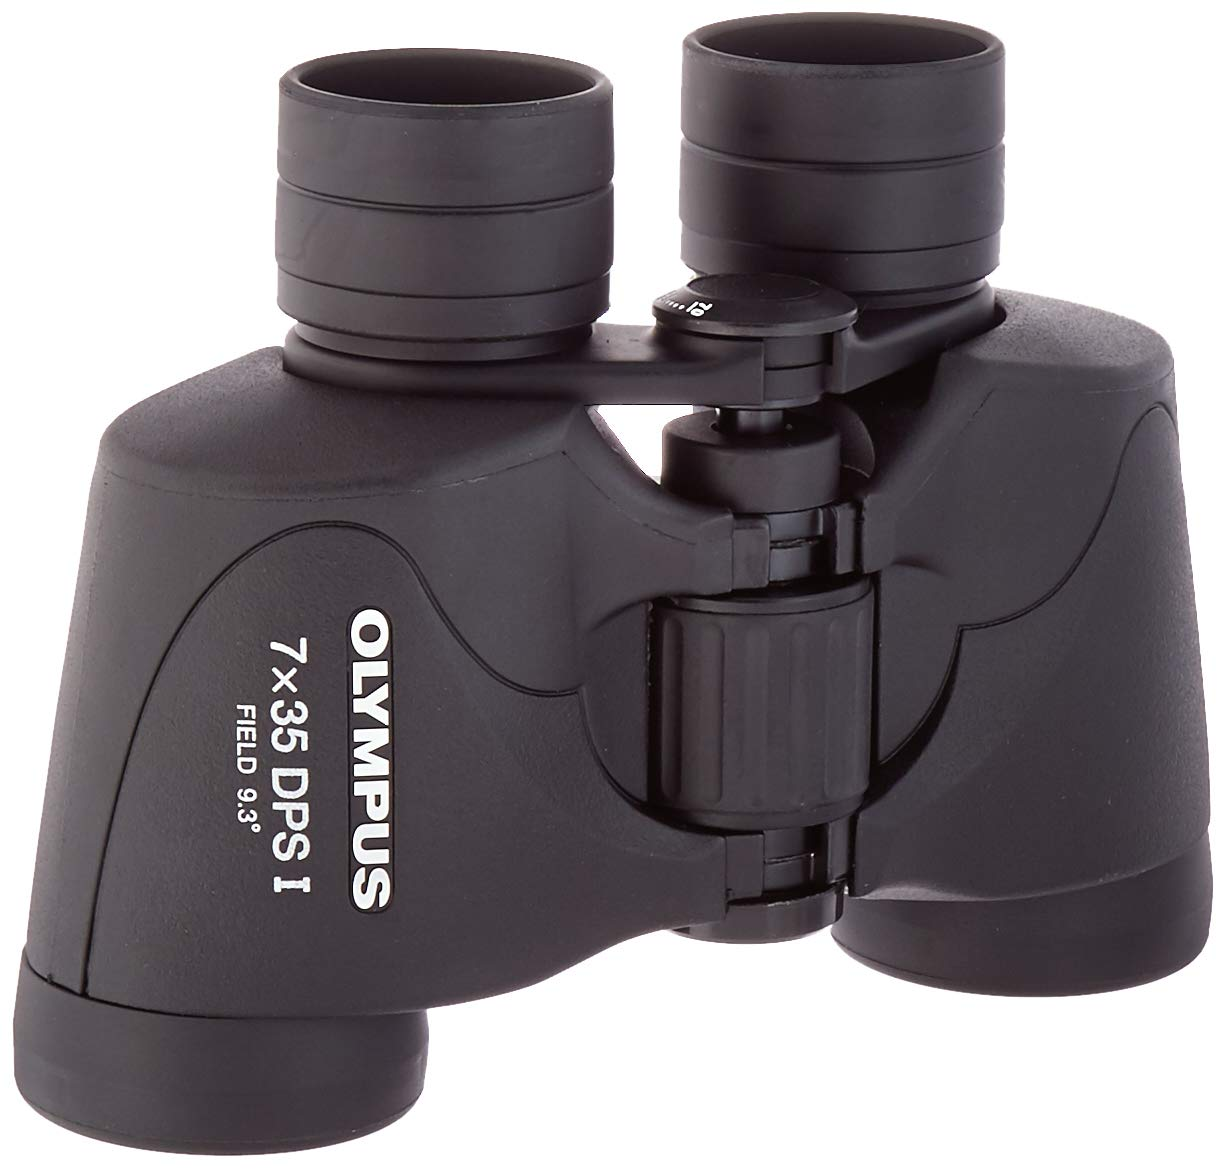 Cameras & Photo Fast Deliver Padded Case W/ Strap For Use W/ Olympus 118760 10 X 50 Dps-i Binoculars